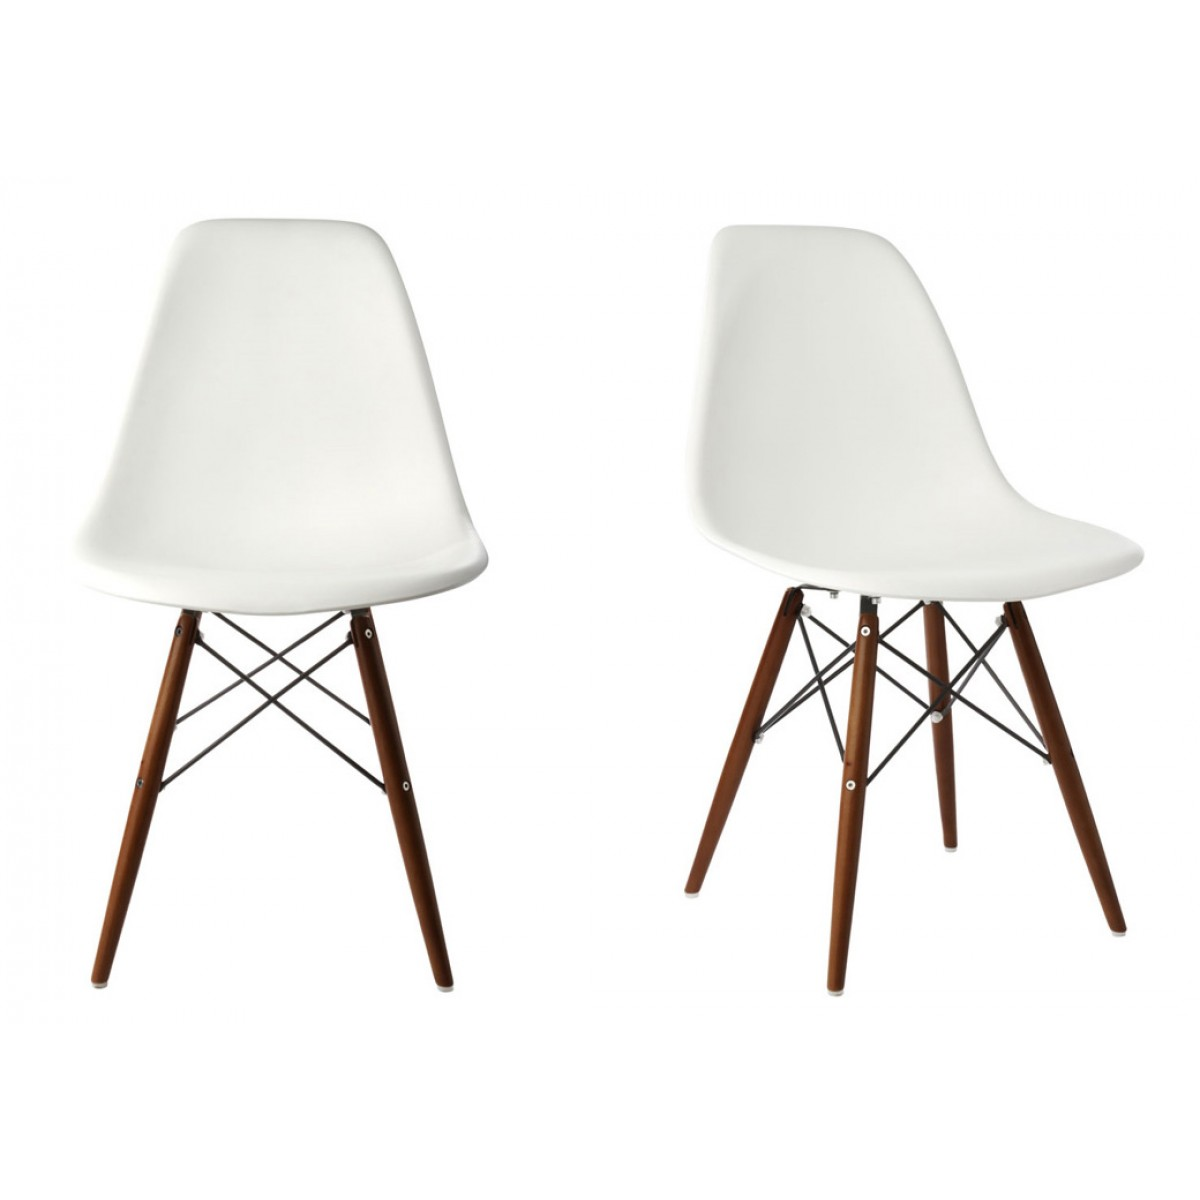 white plastic dining chairs ergonomic chair drawing set of 2 eames style dsw molded shell with dark walnut wood eiffel legs